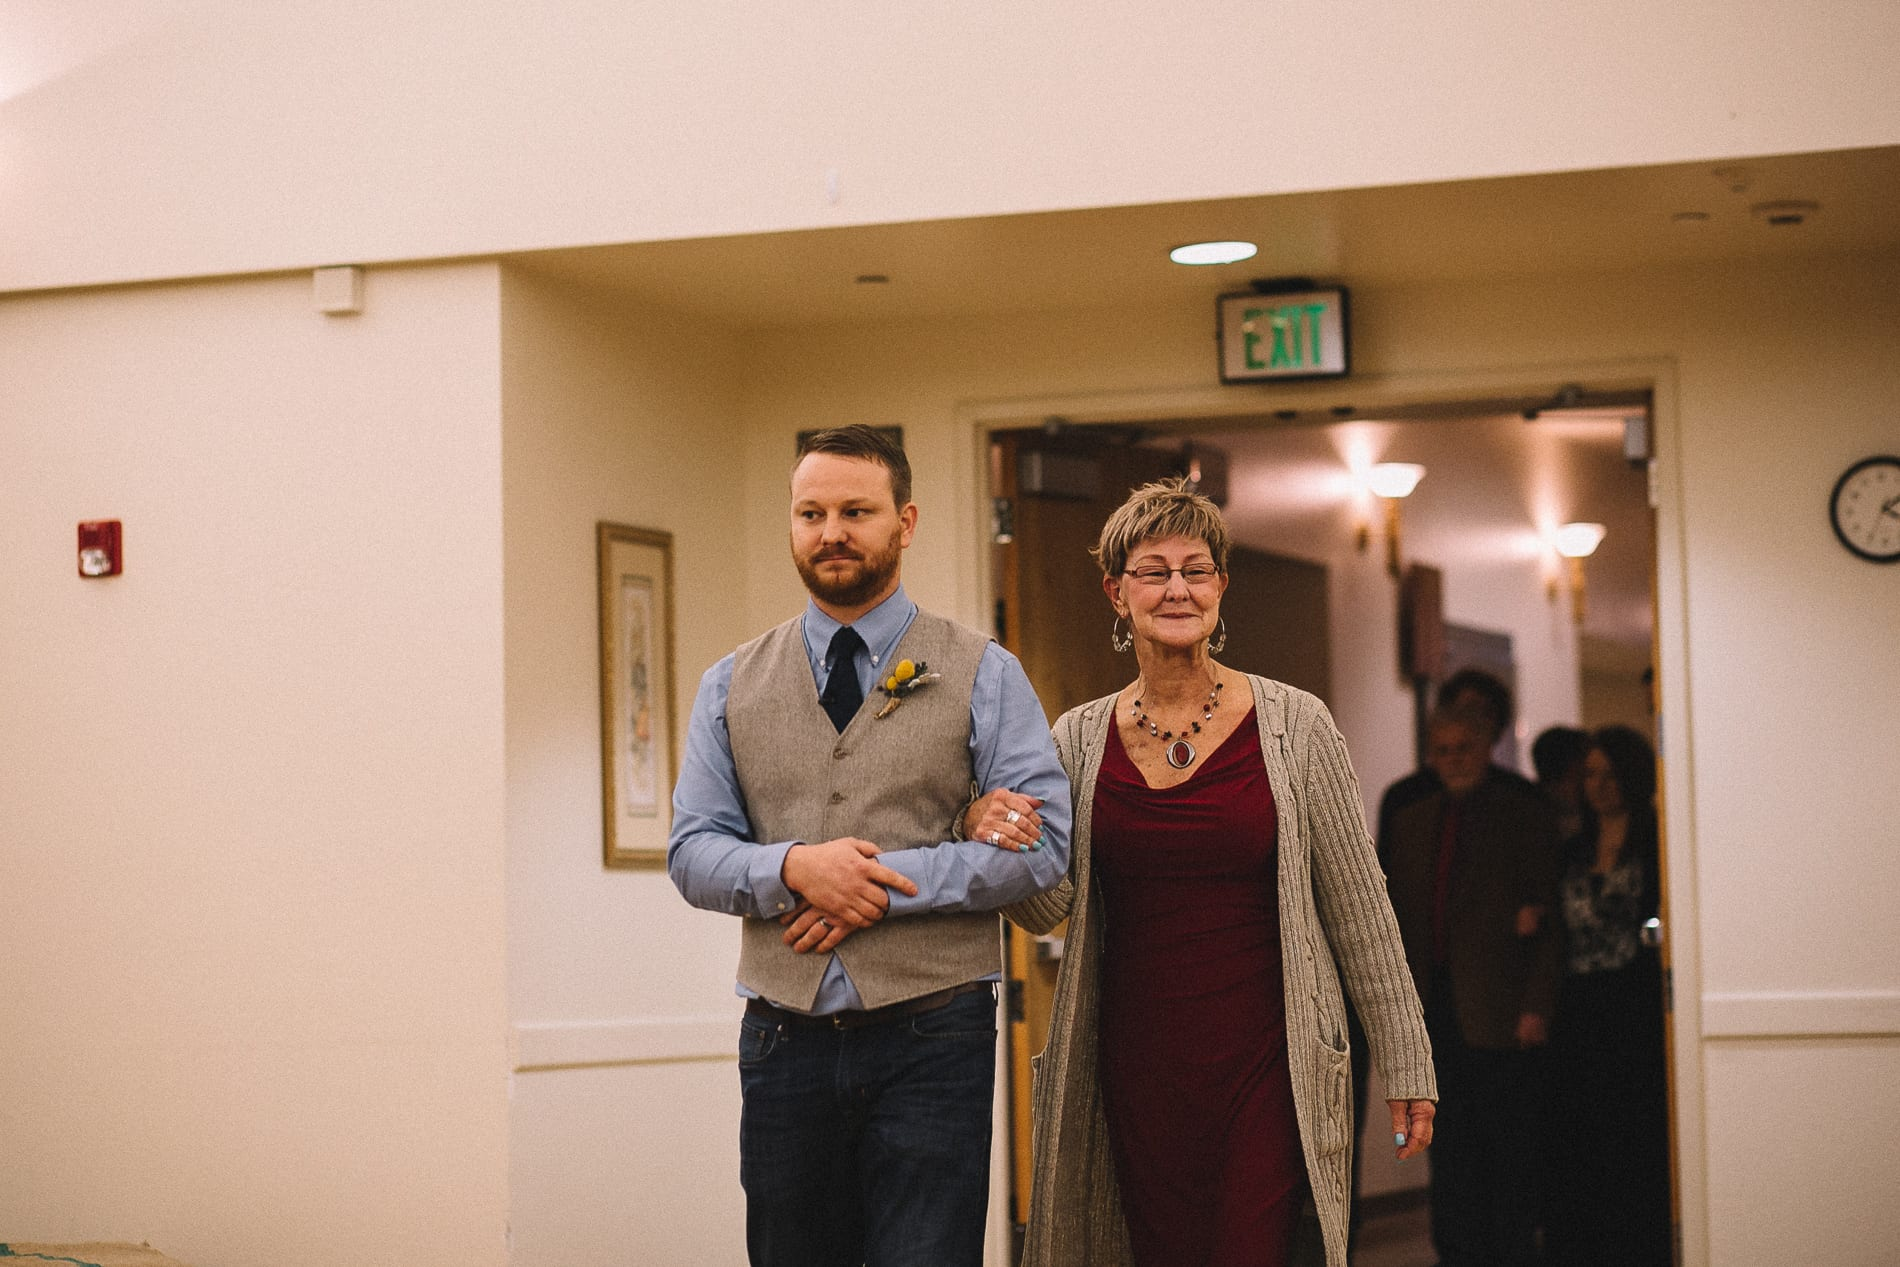 mercy-oaks-redding-wedding-photo-25